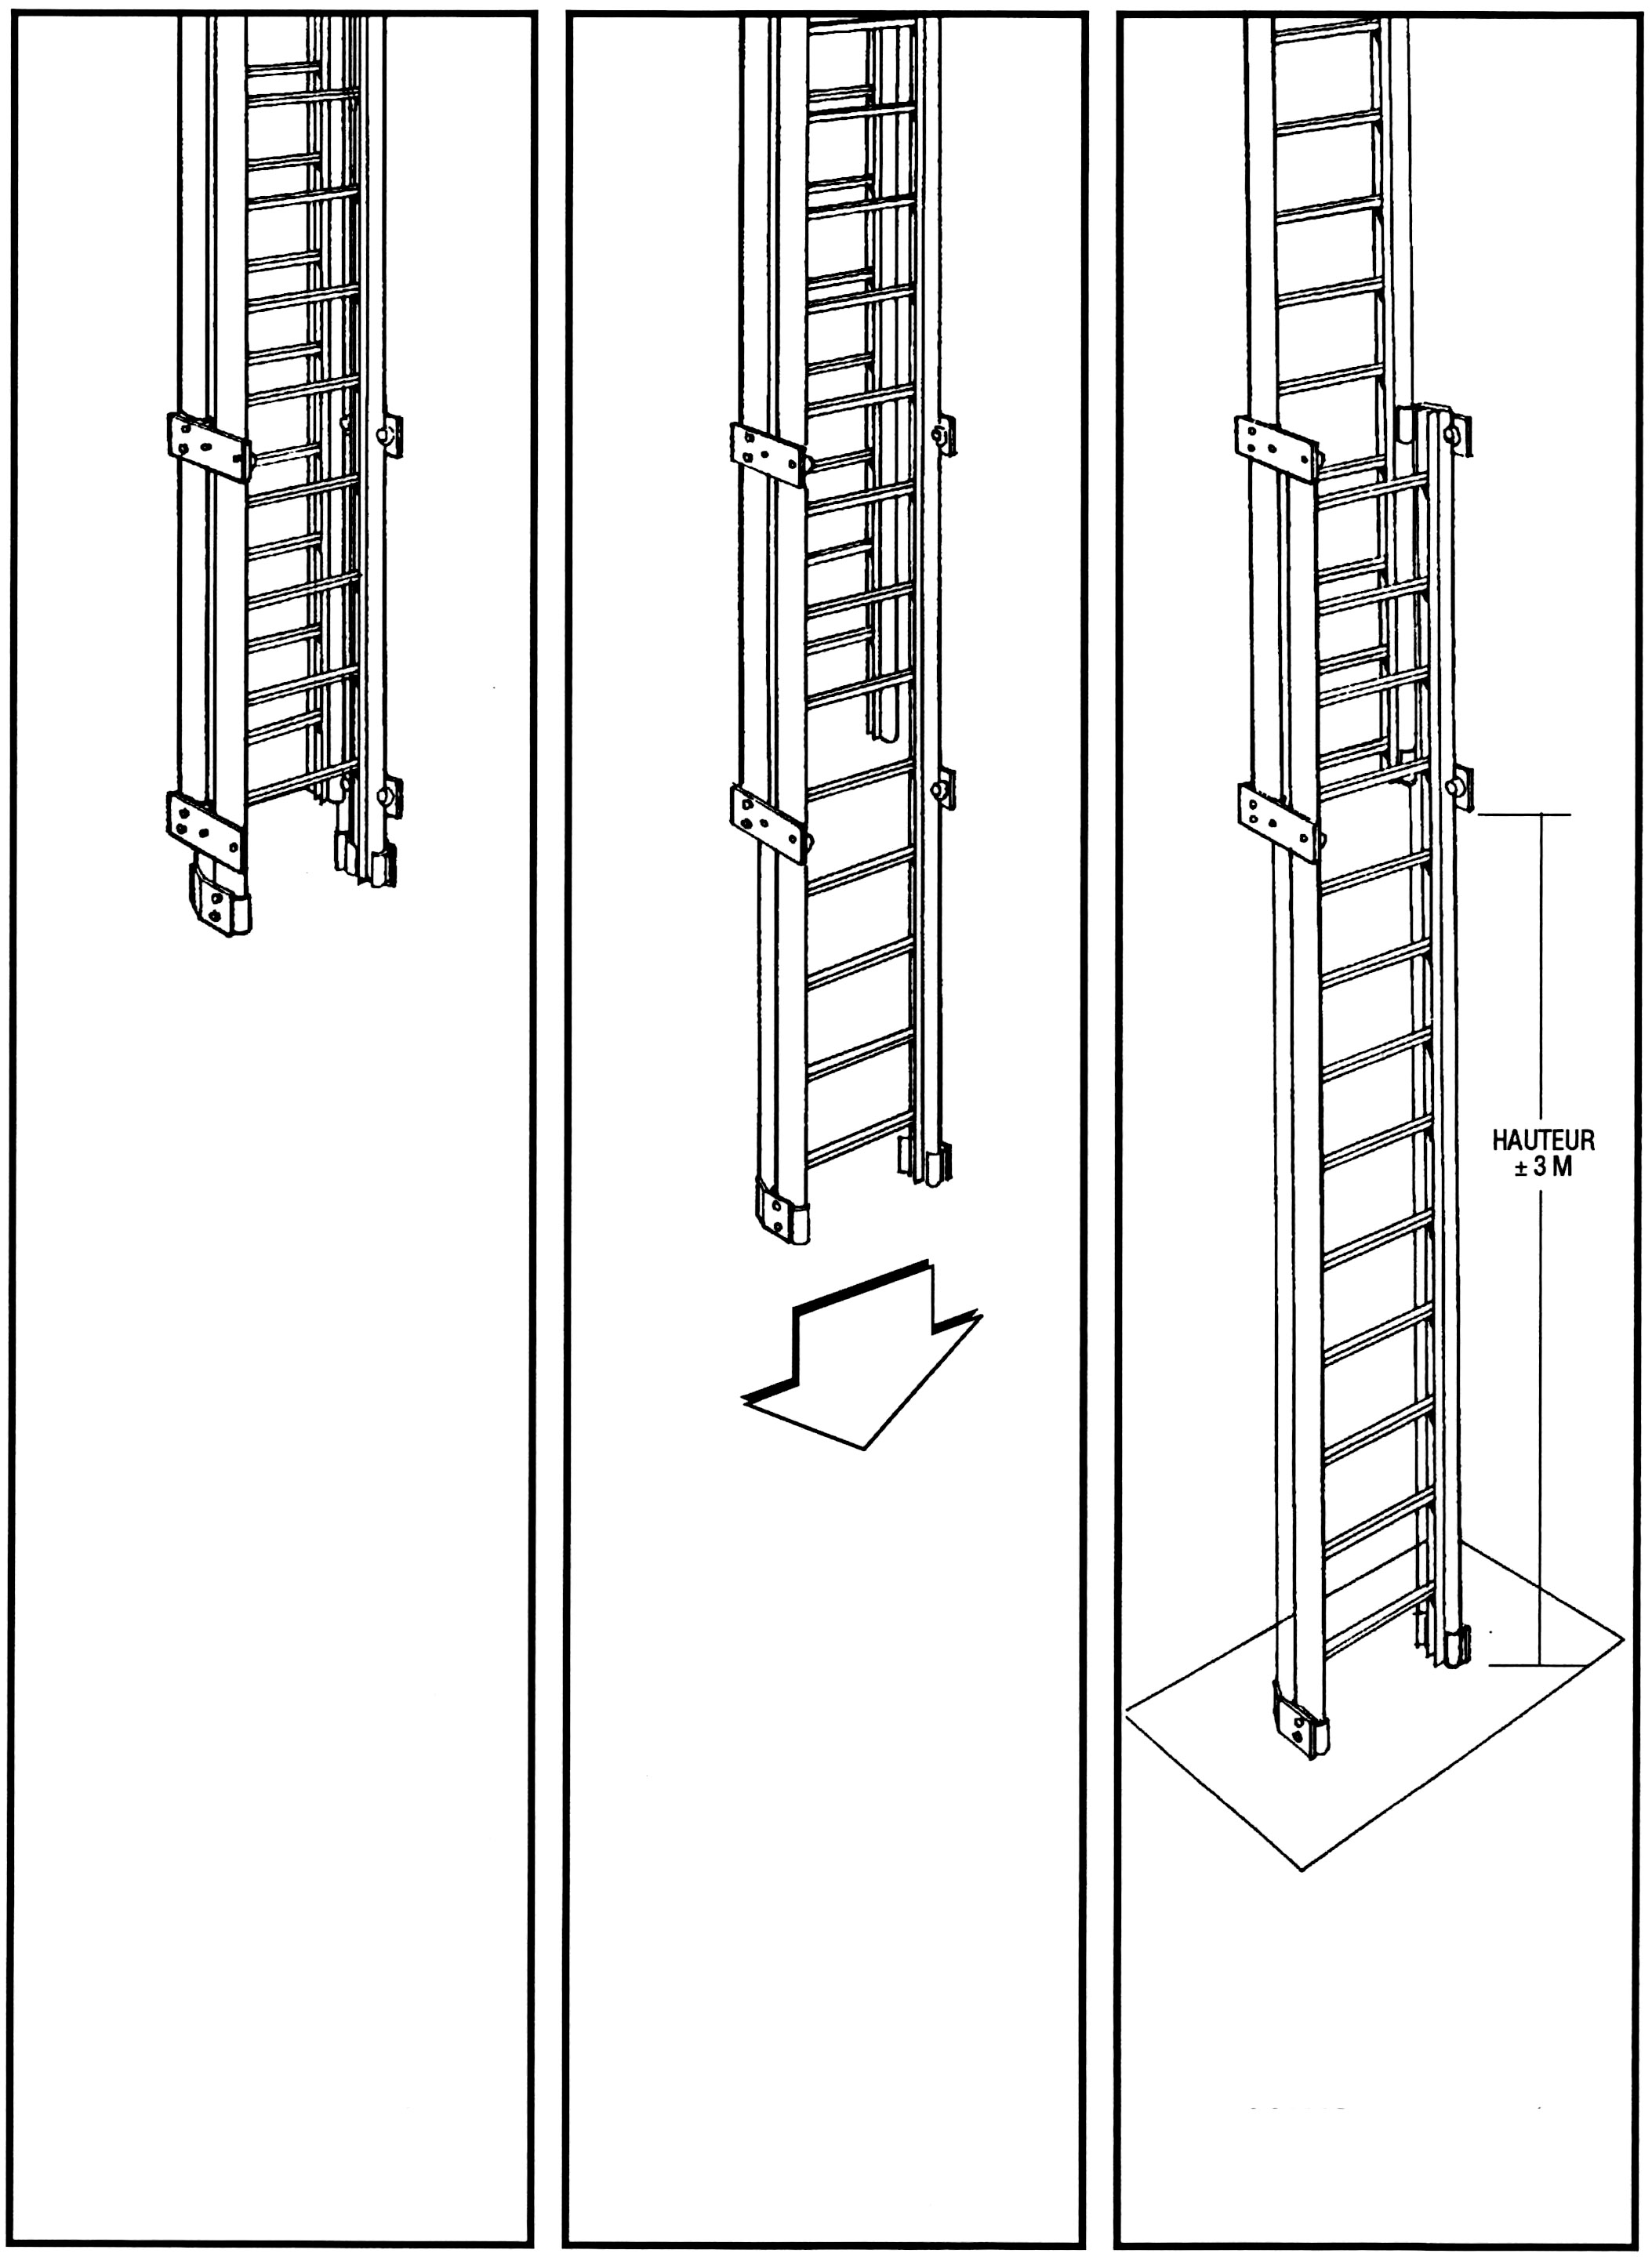 Counter-balanced ladder, base section